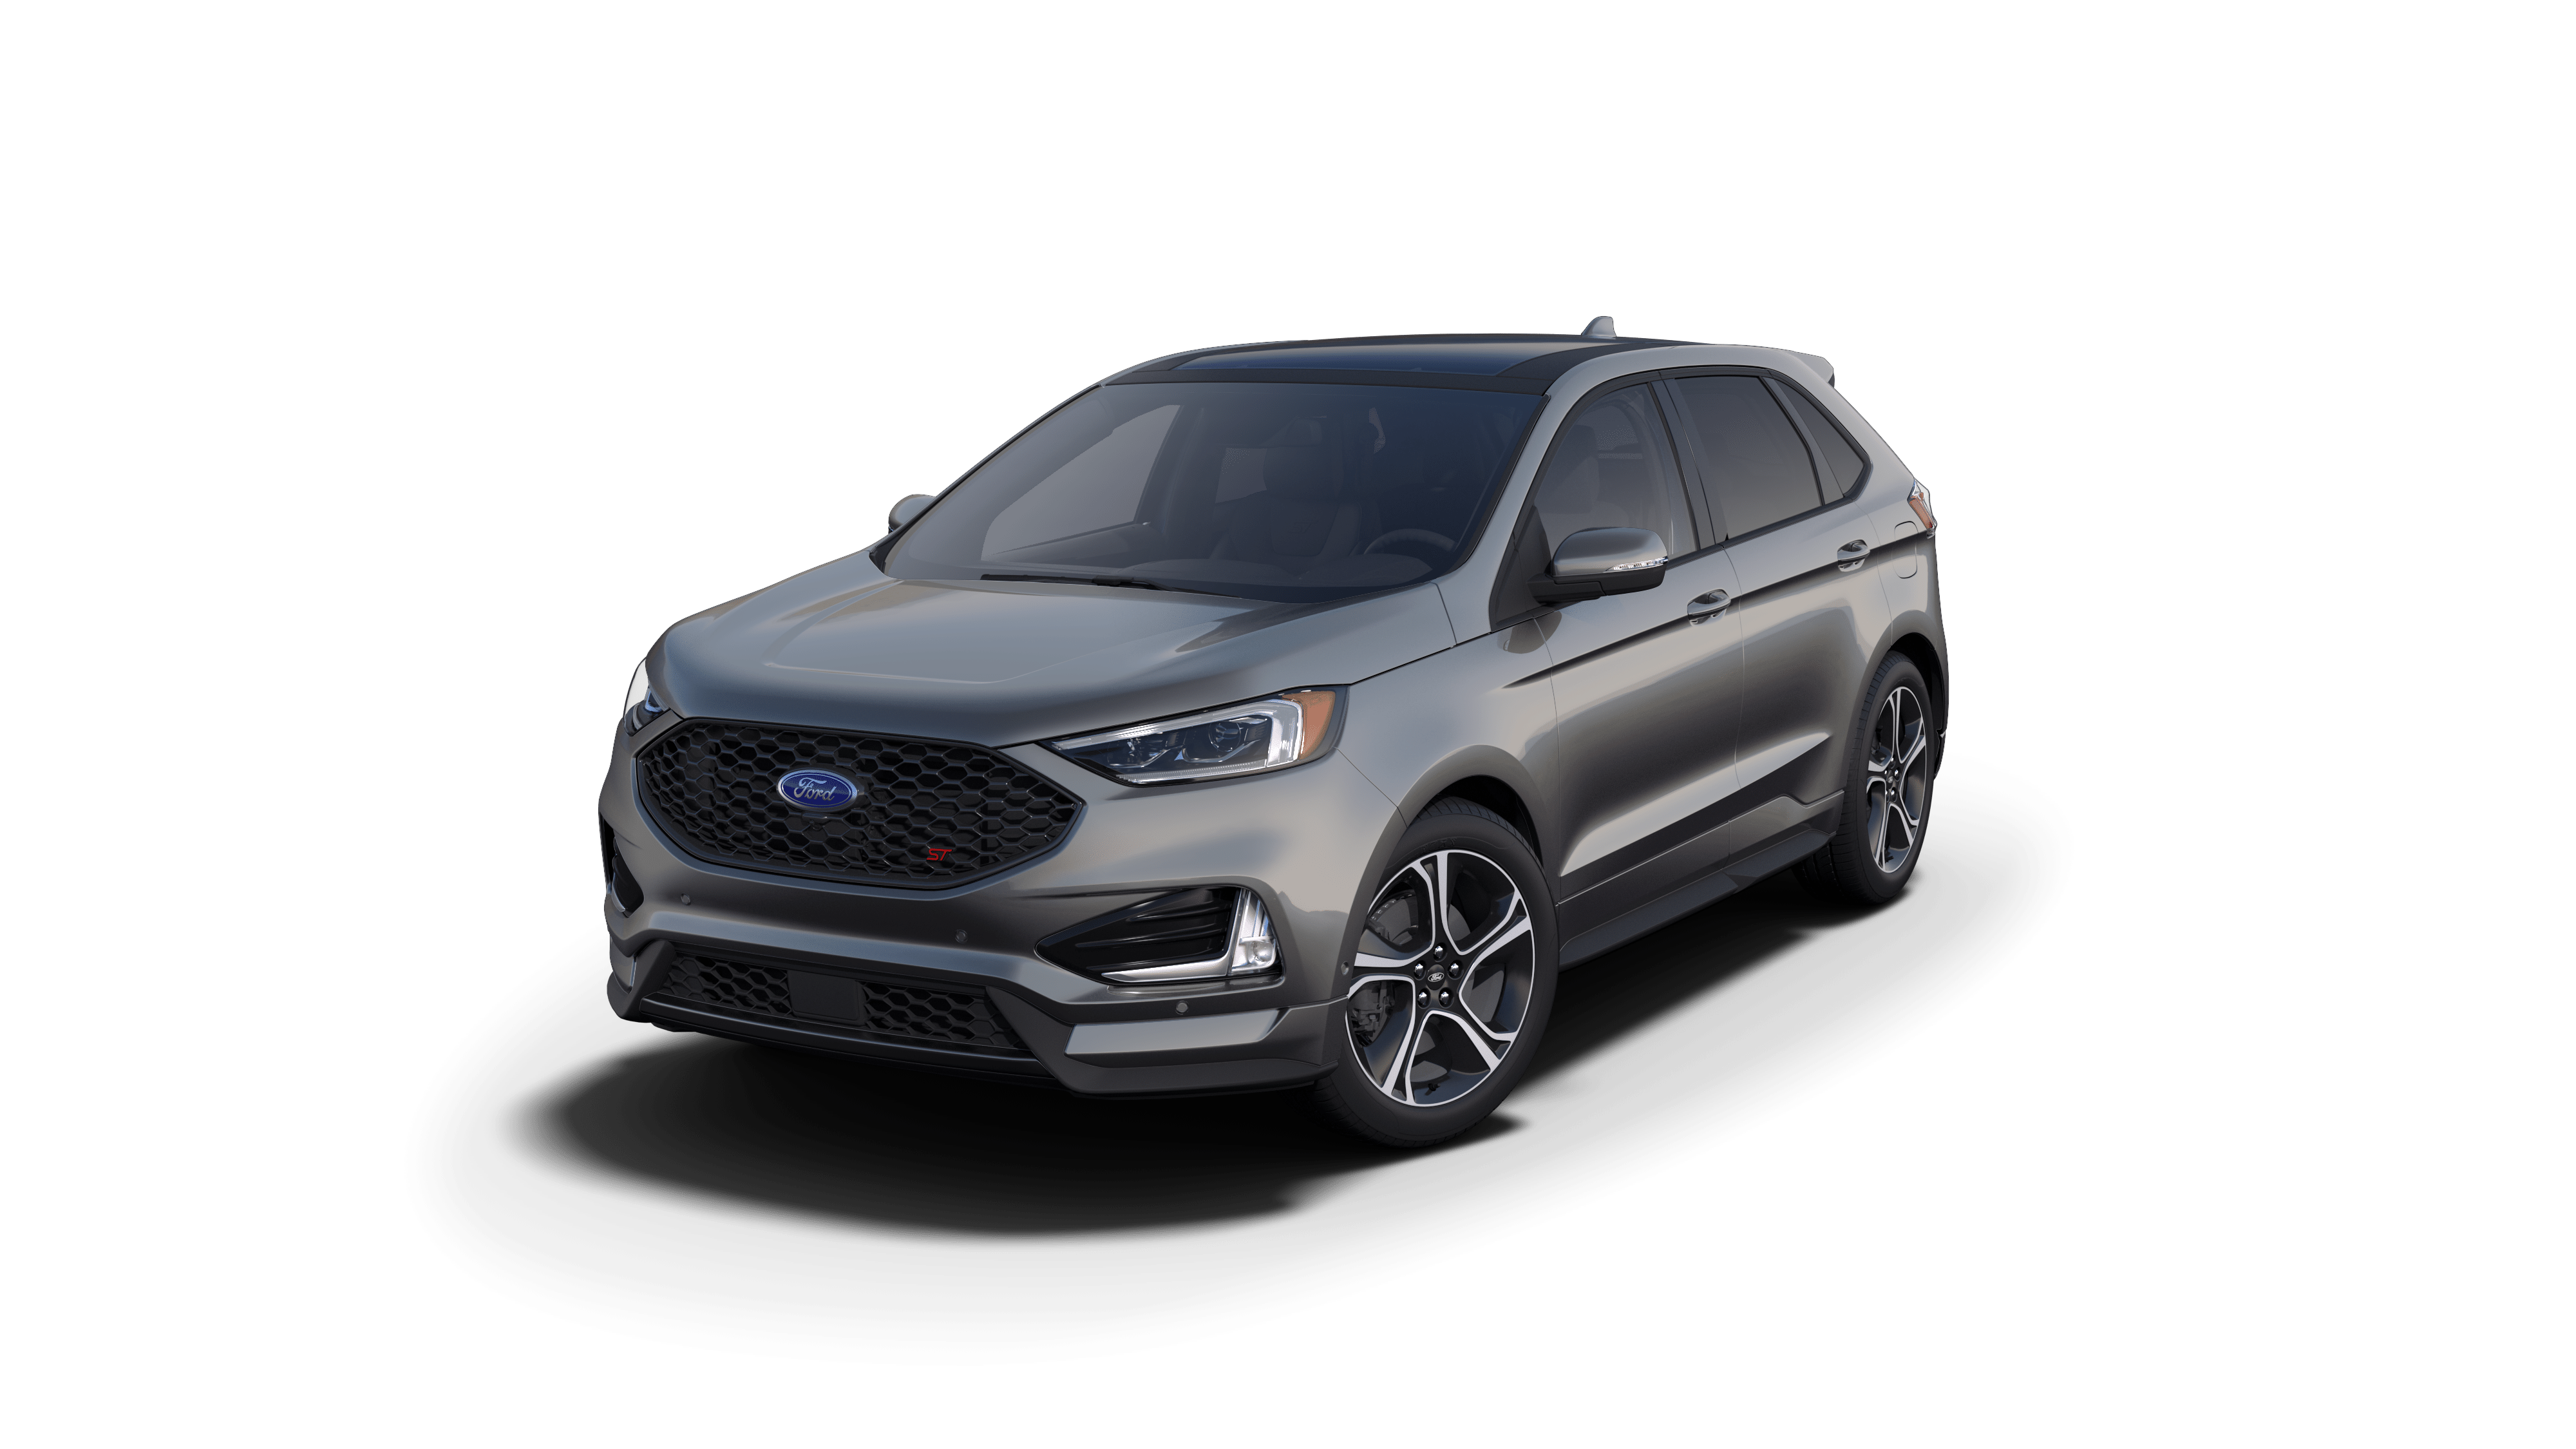 2019 Ford Edge Vehicle Photo in Quakertown, PA 18951-1403